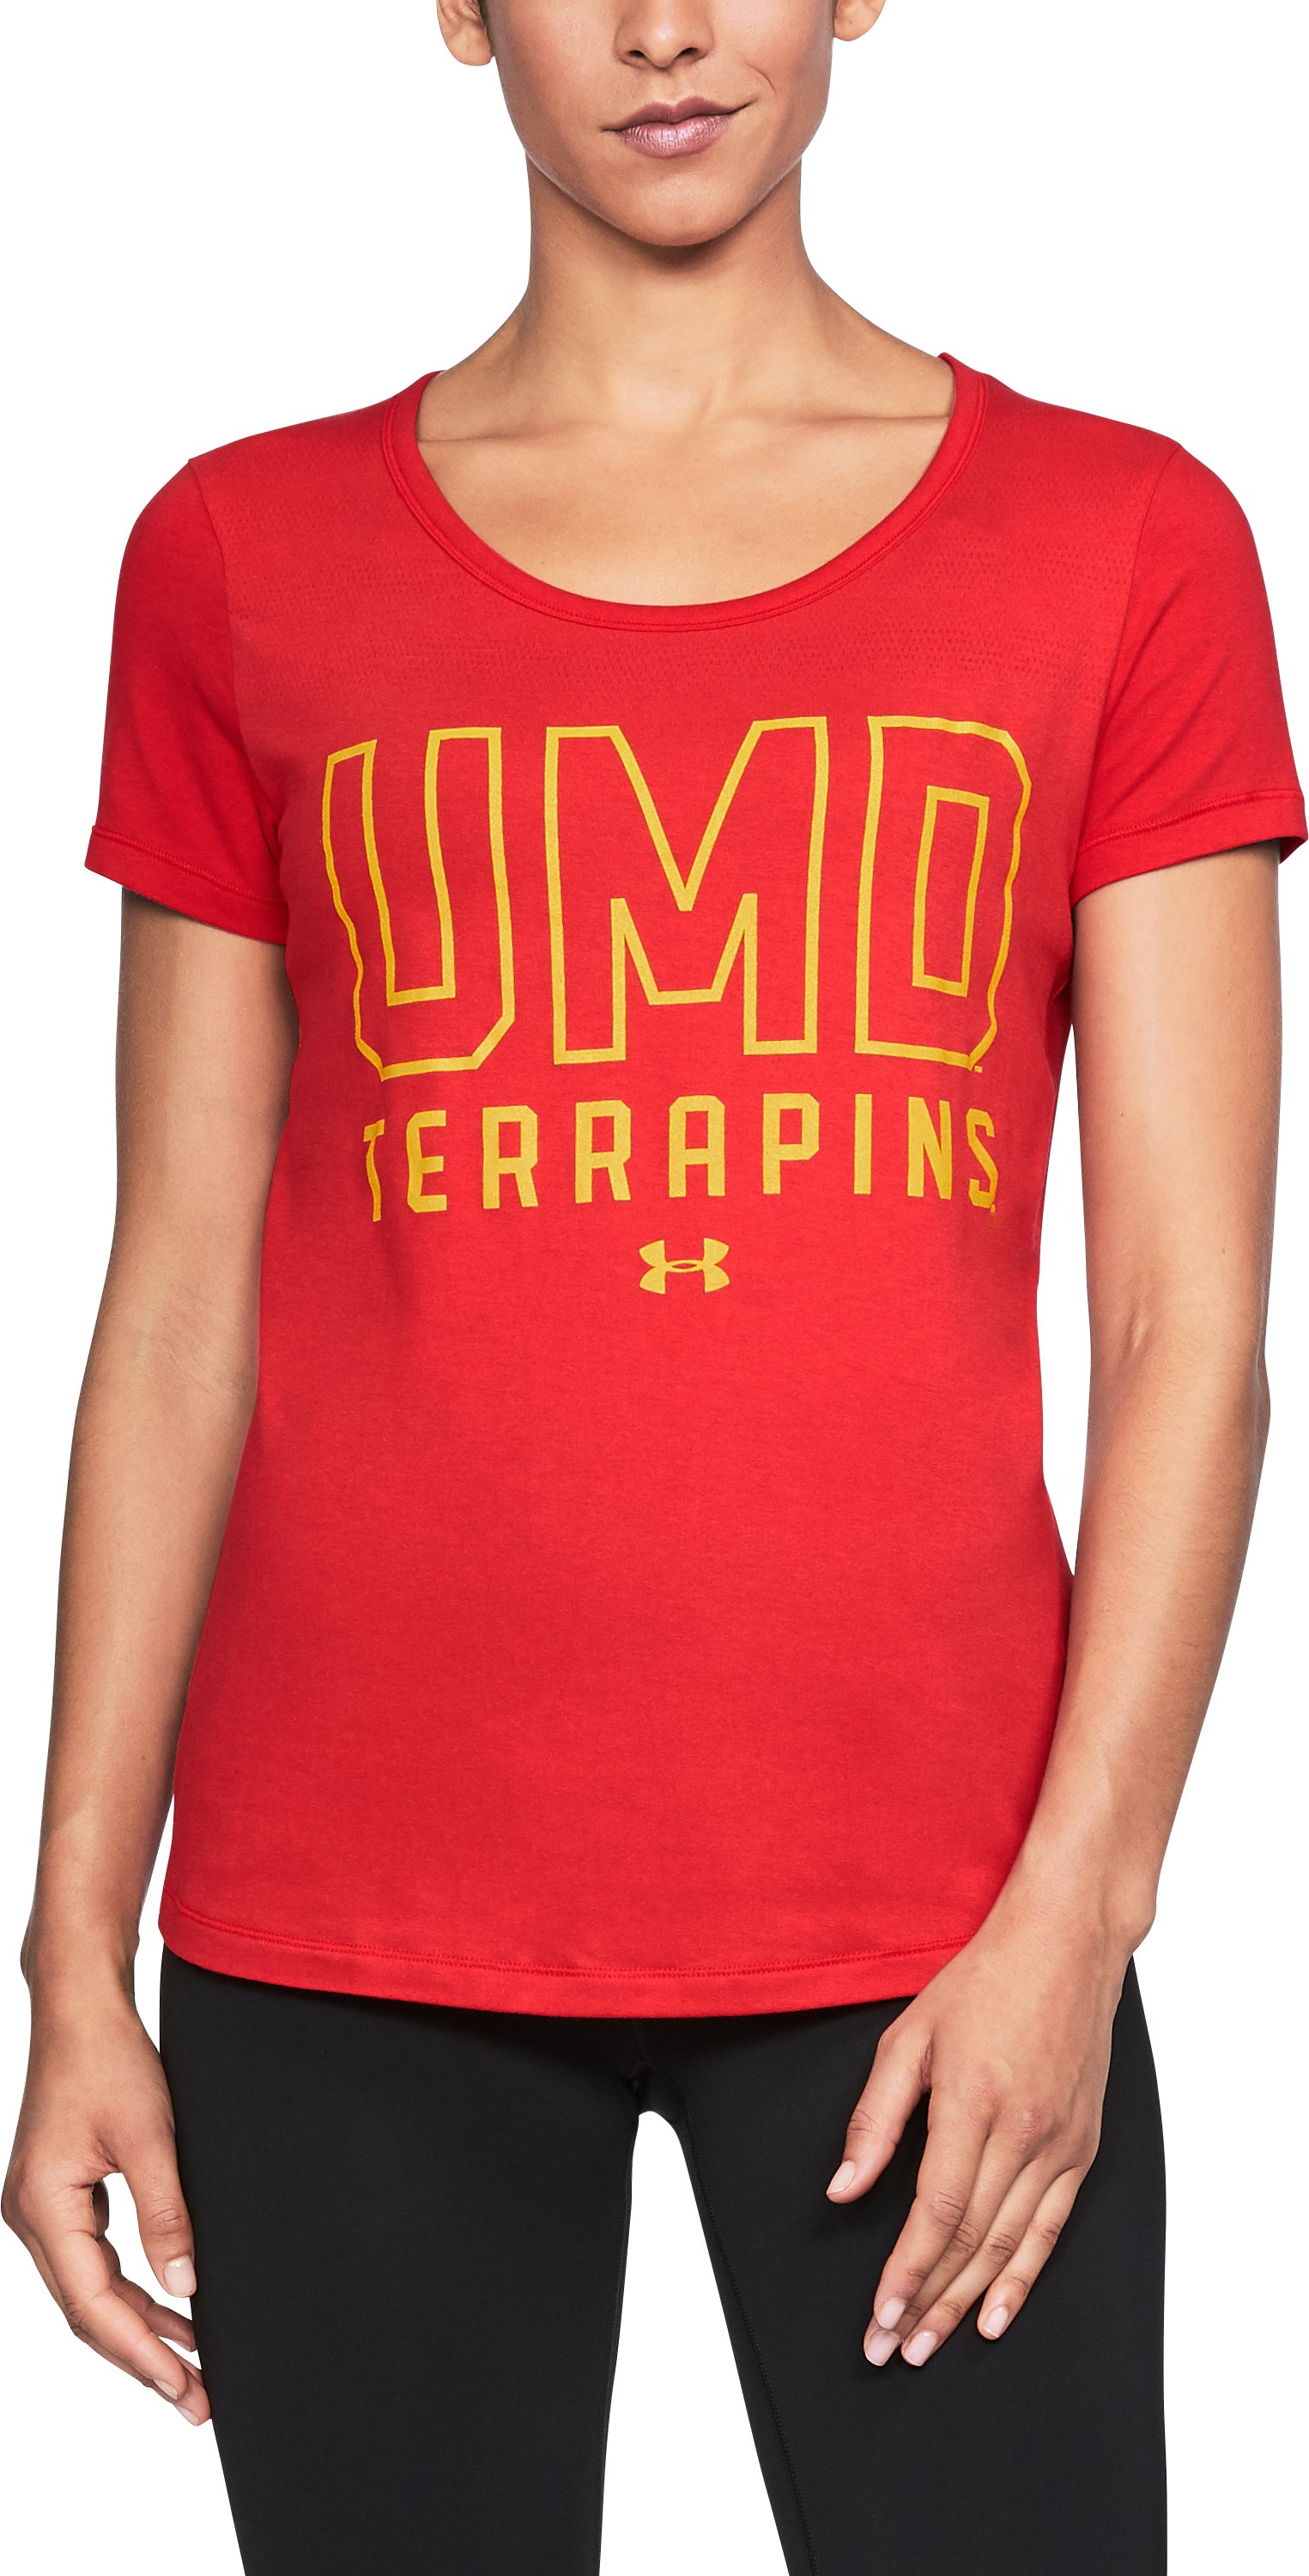 Women's Maryland UA Vent Short Sleeve T-Shirt-Shirt, Red,